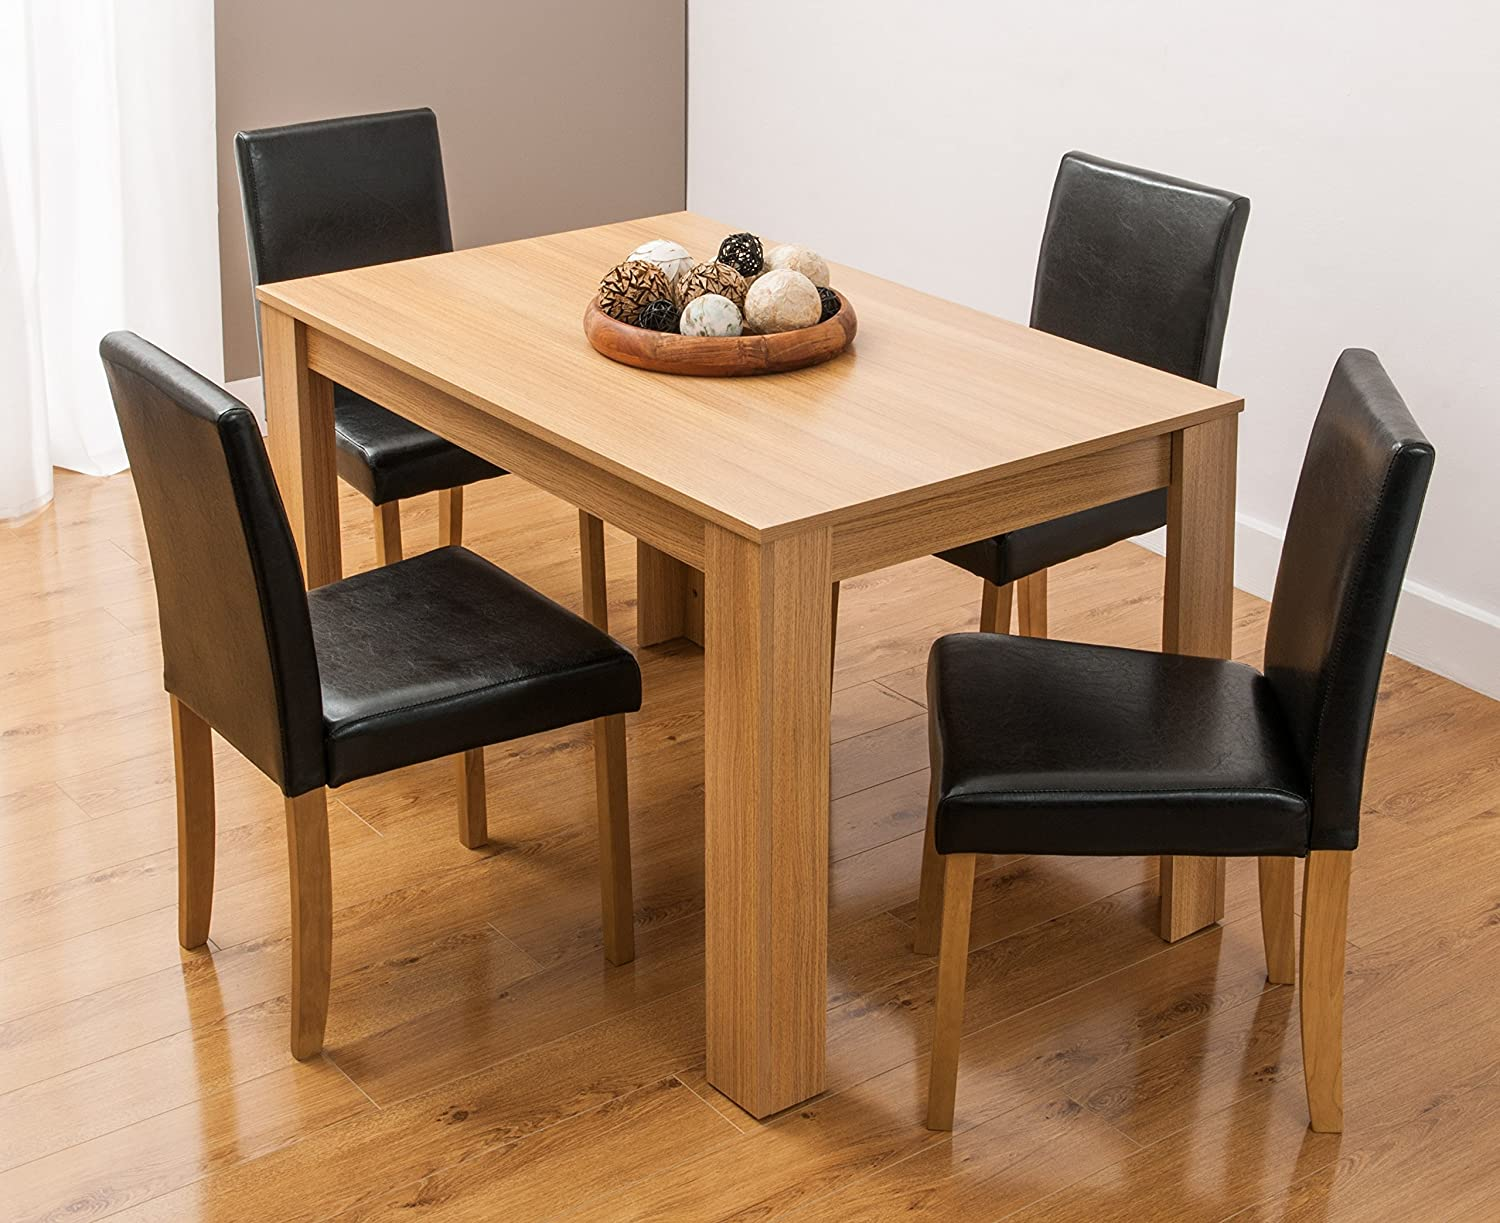 Home Living Dining Table and Chairs, Faux Leather, Black, L9 x W9 x H9cm